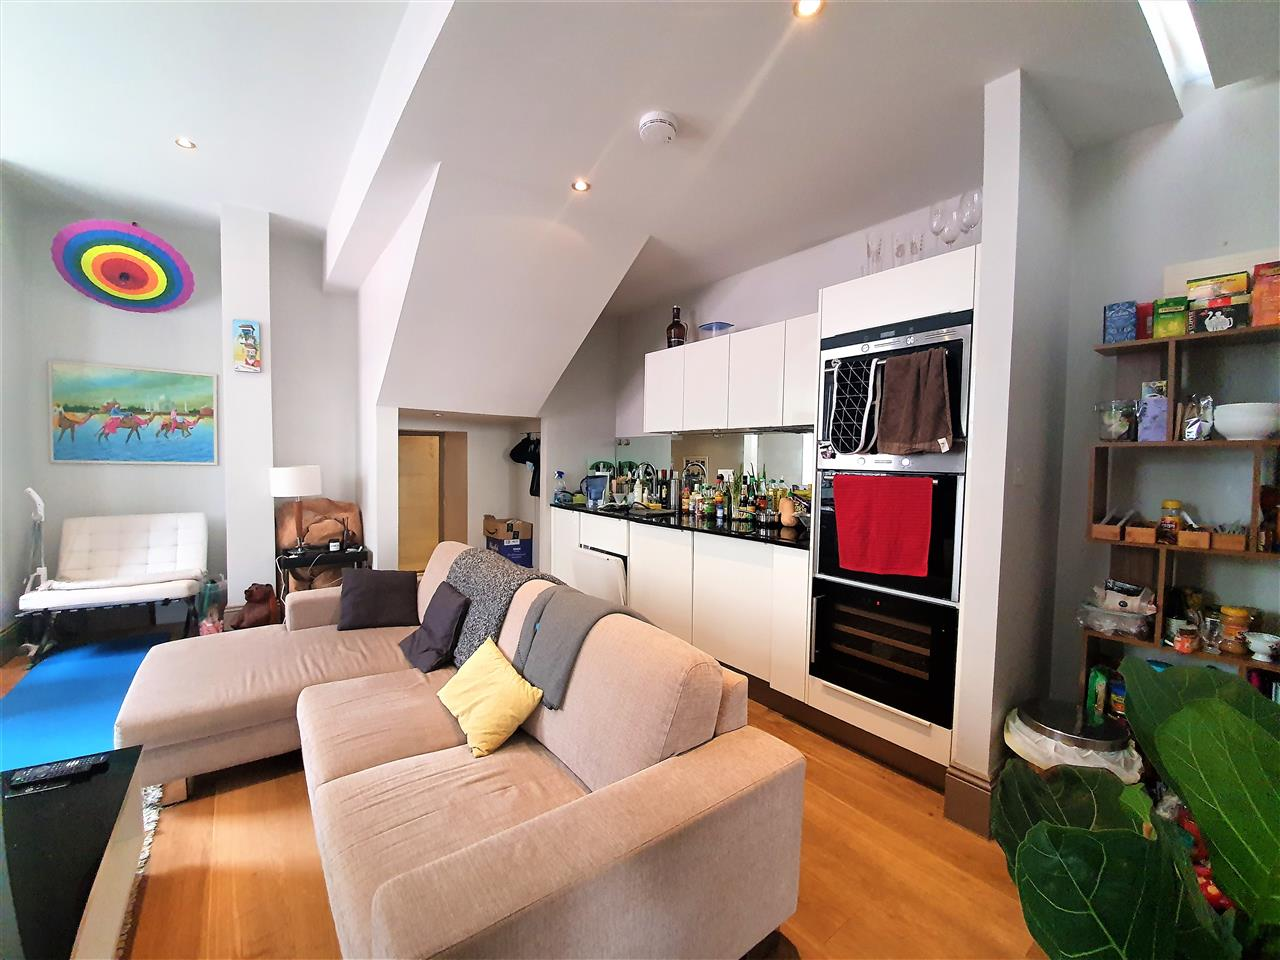 2 bed Apartment for rent in Fitzrovia. From Open House